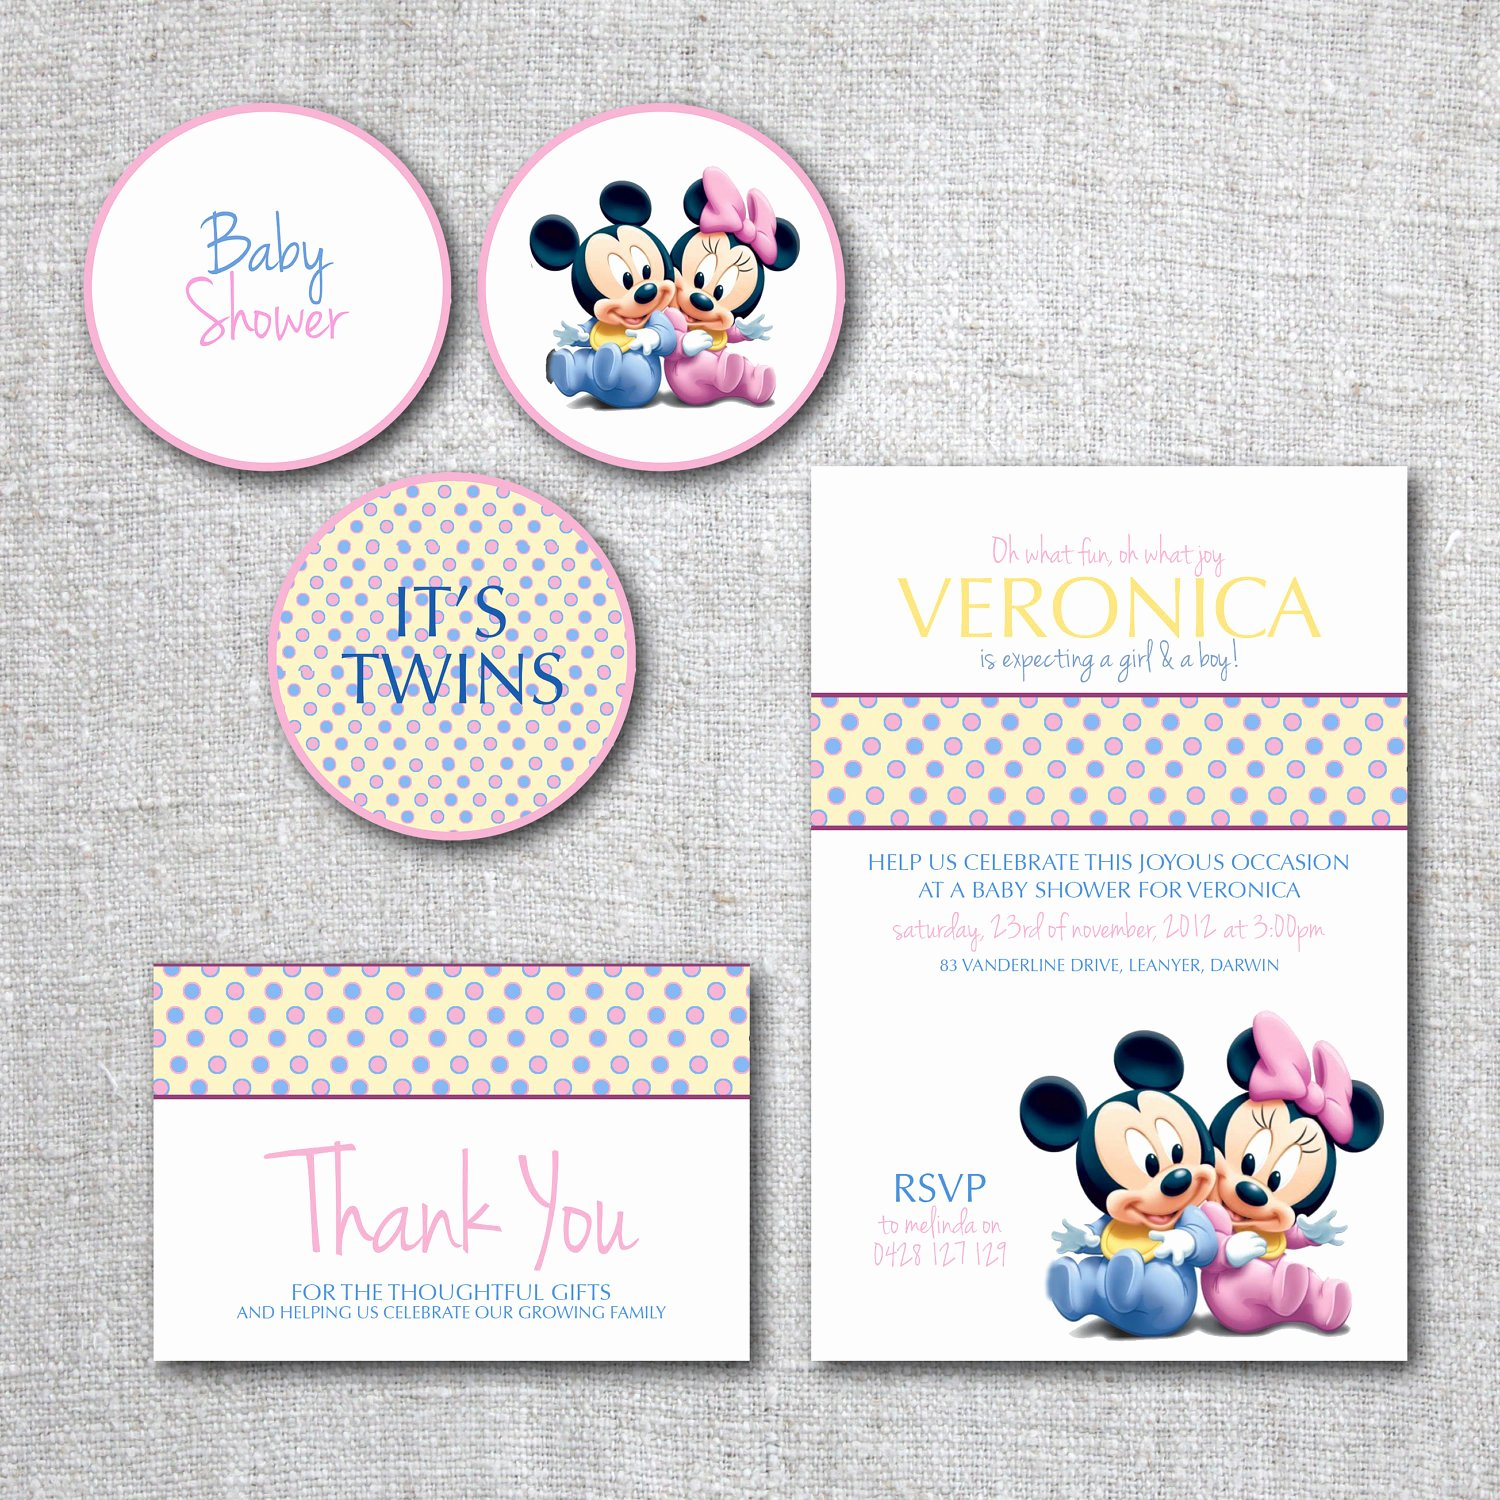 Baby Shower Mickey Mouse Invitations Best Of Twins Baby Shower Invitation Set Mickey Mouse Baby Minnie